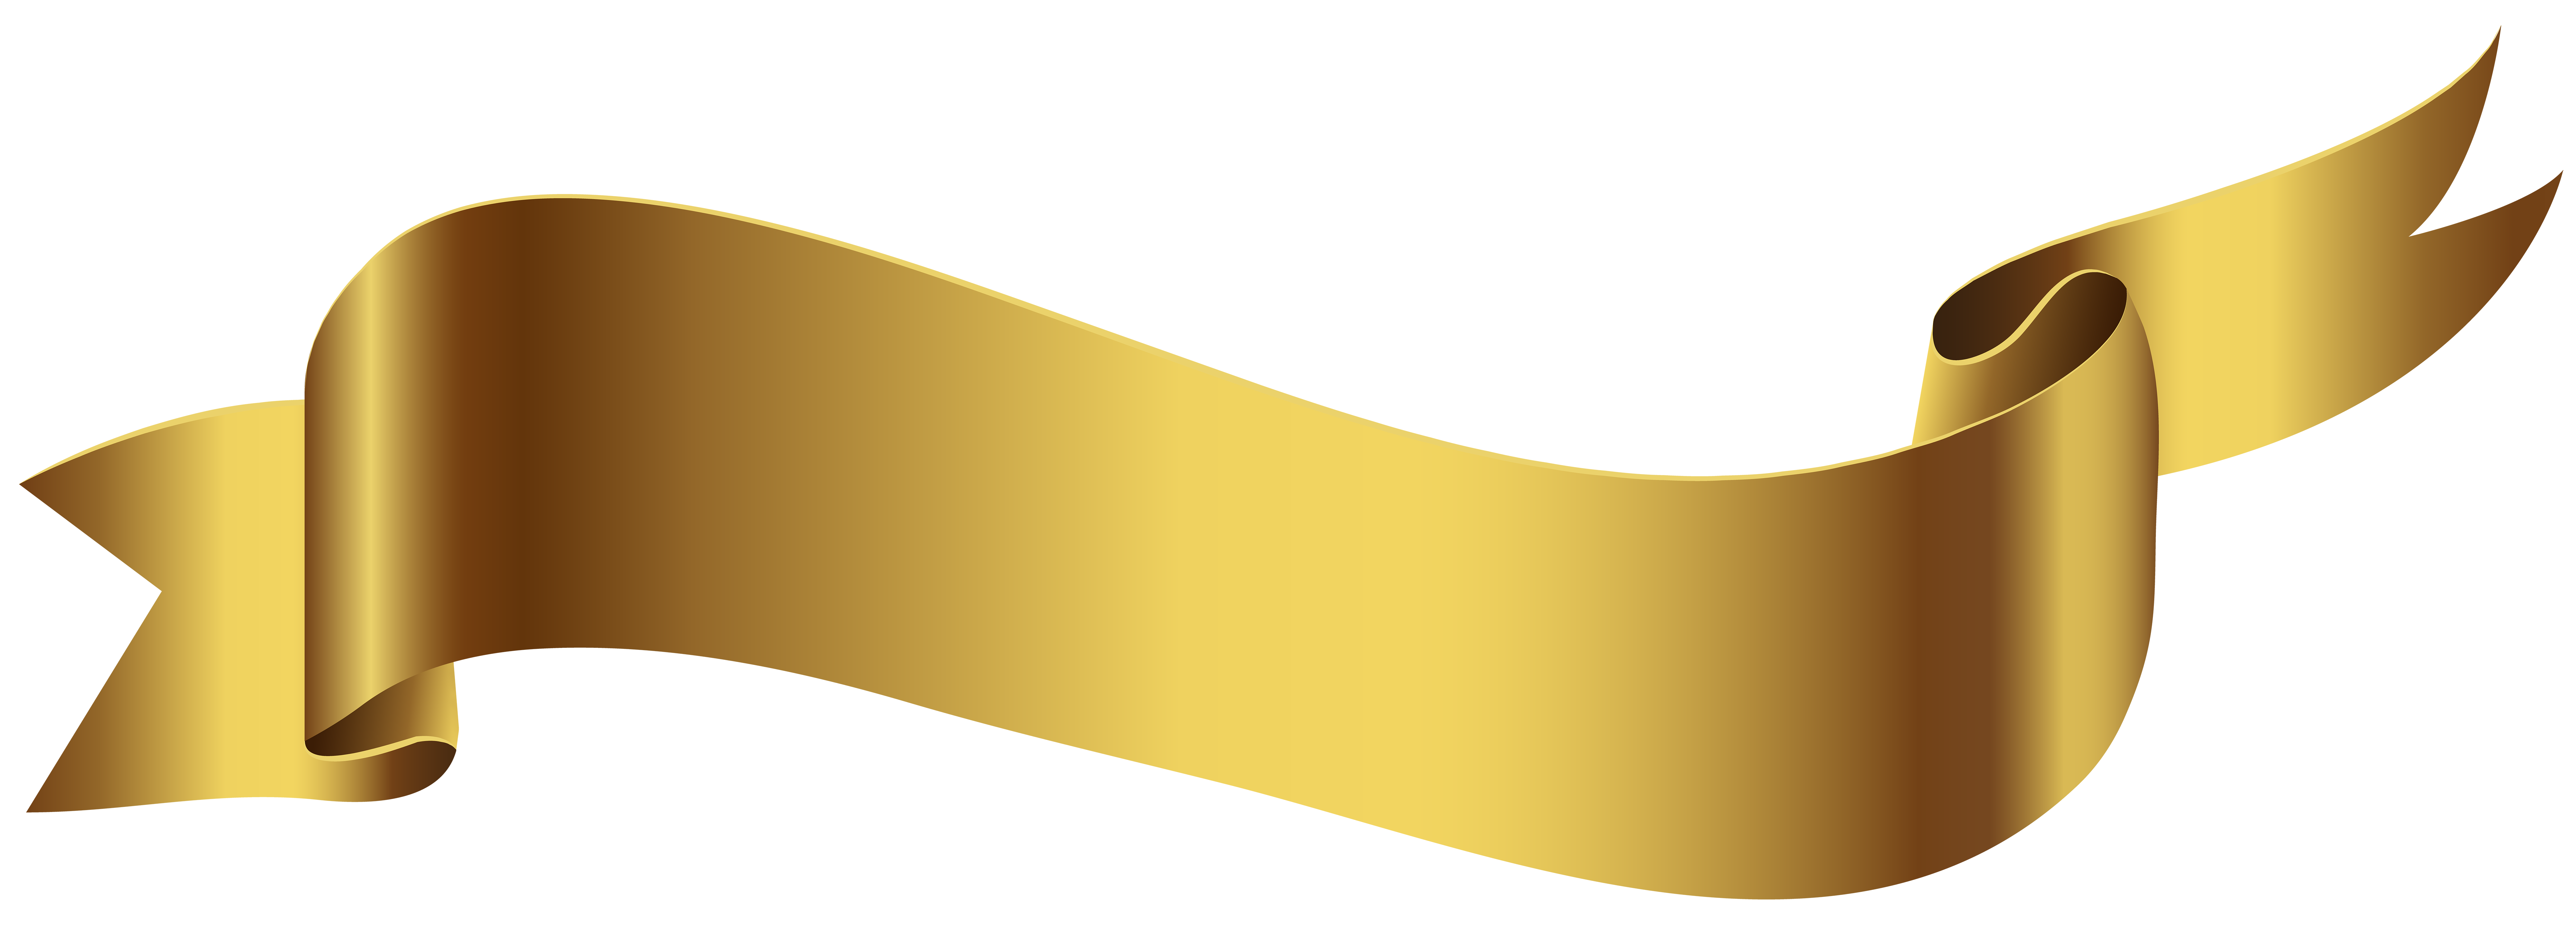 Gold Banner Png Transparent Image Gallery Yopriceville High Quality Images And Transparent Png Free Clipart Gold Banner Png Ribbon Png